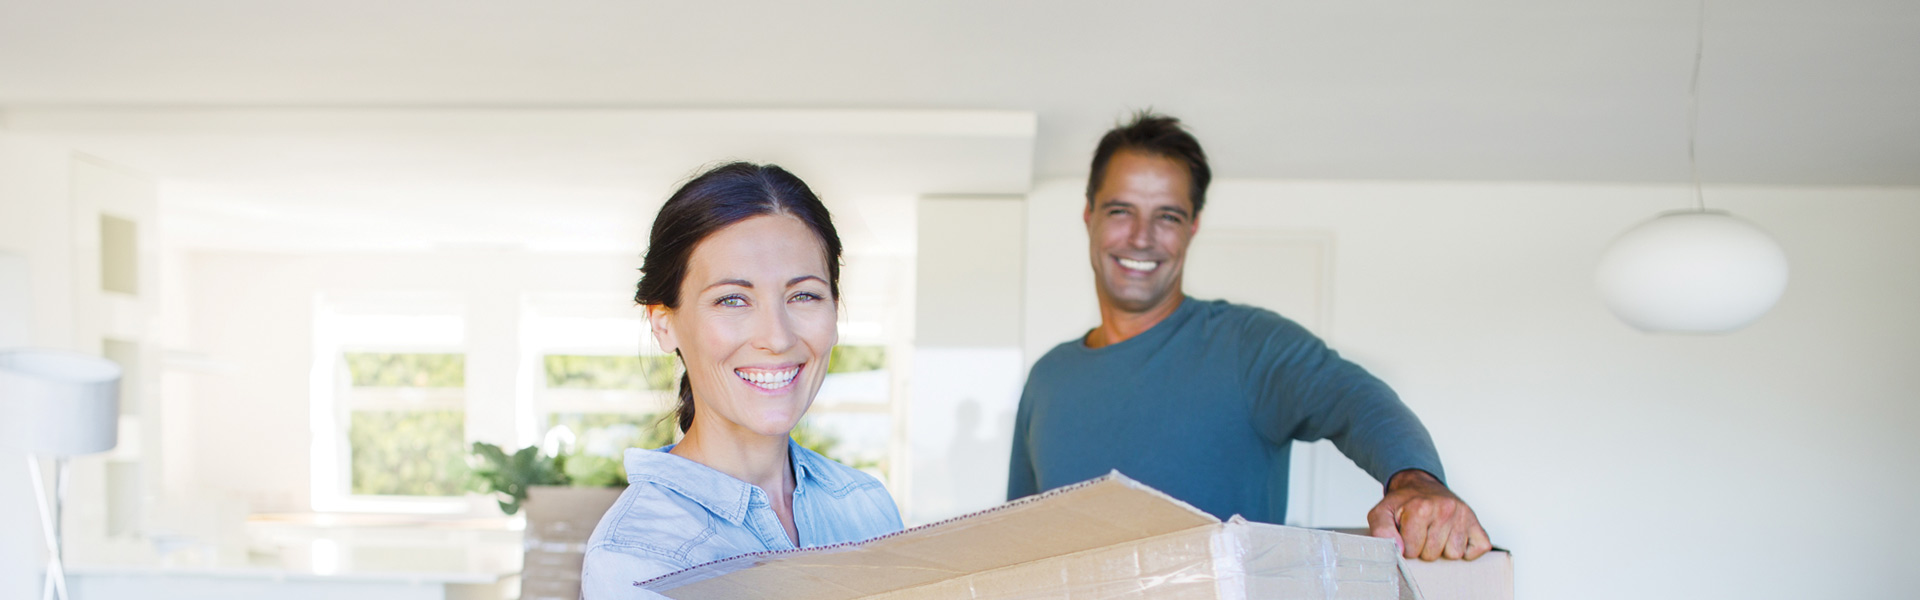 Man and woman moving boxes in new home smiling